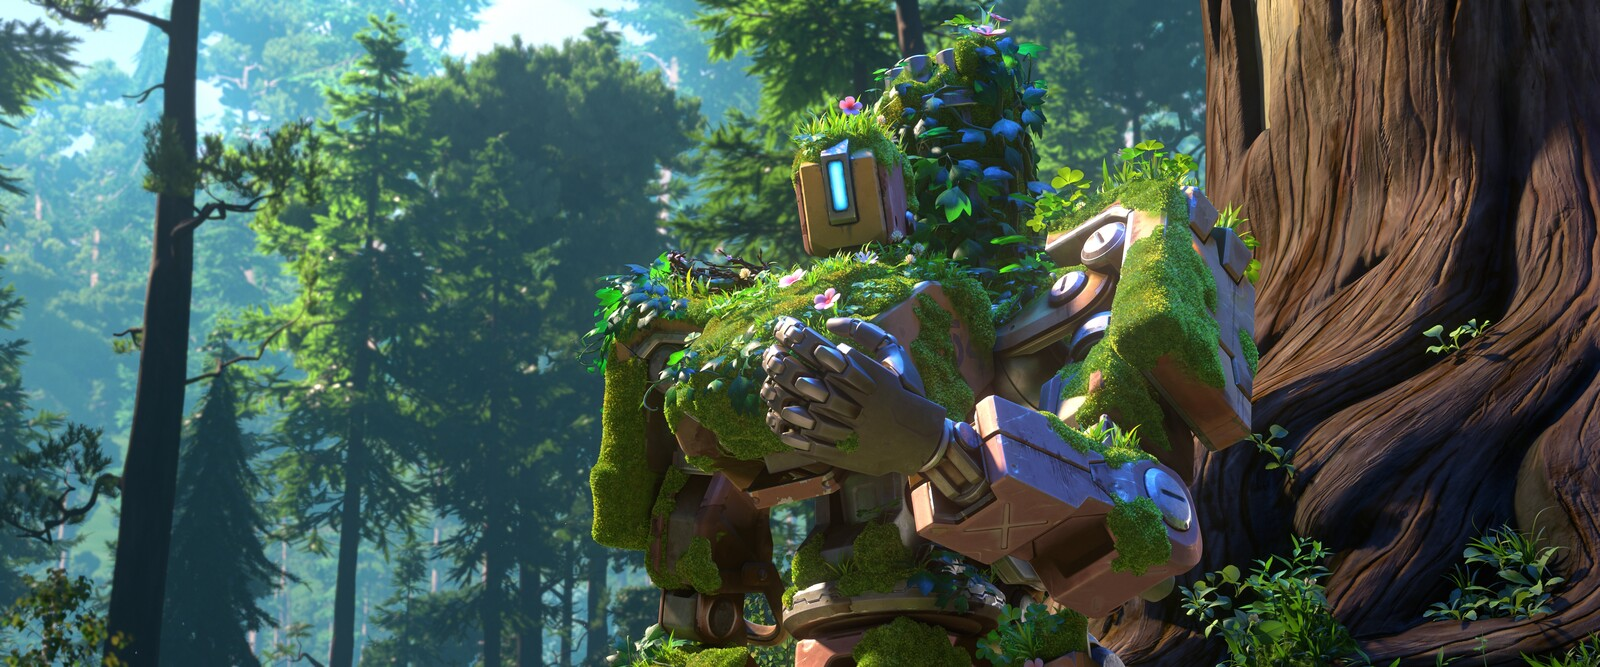 Rig & Lead: Overwatch: Last Bastion